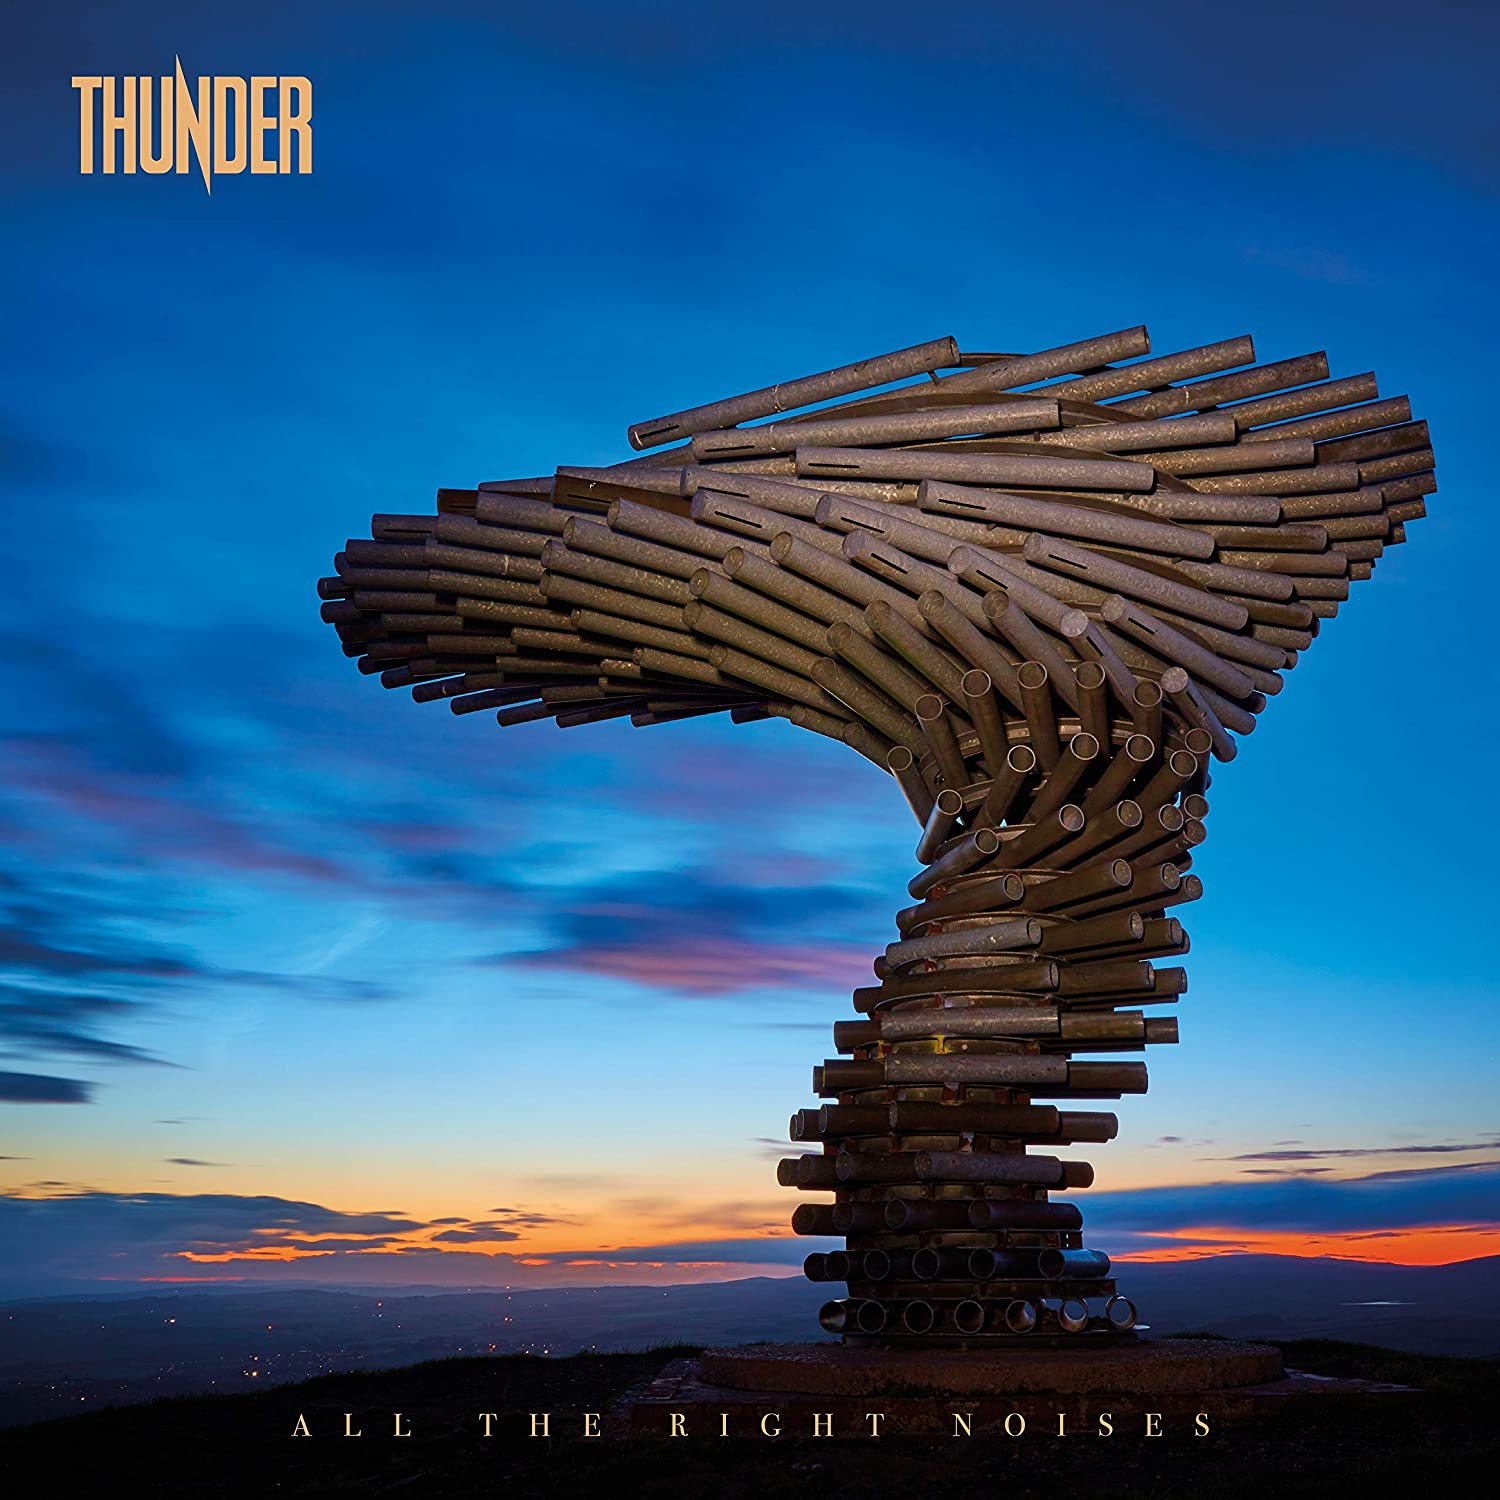 Thunder - All The Right Noises 2CD Album